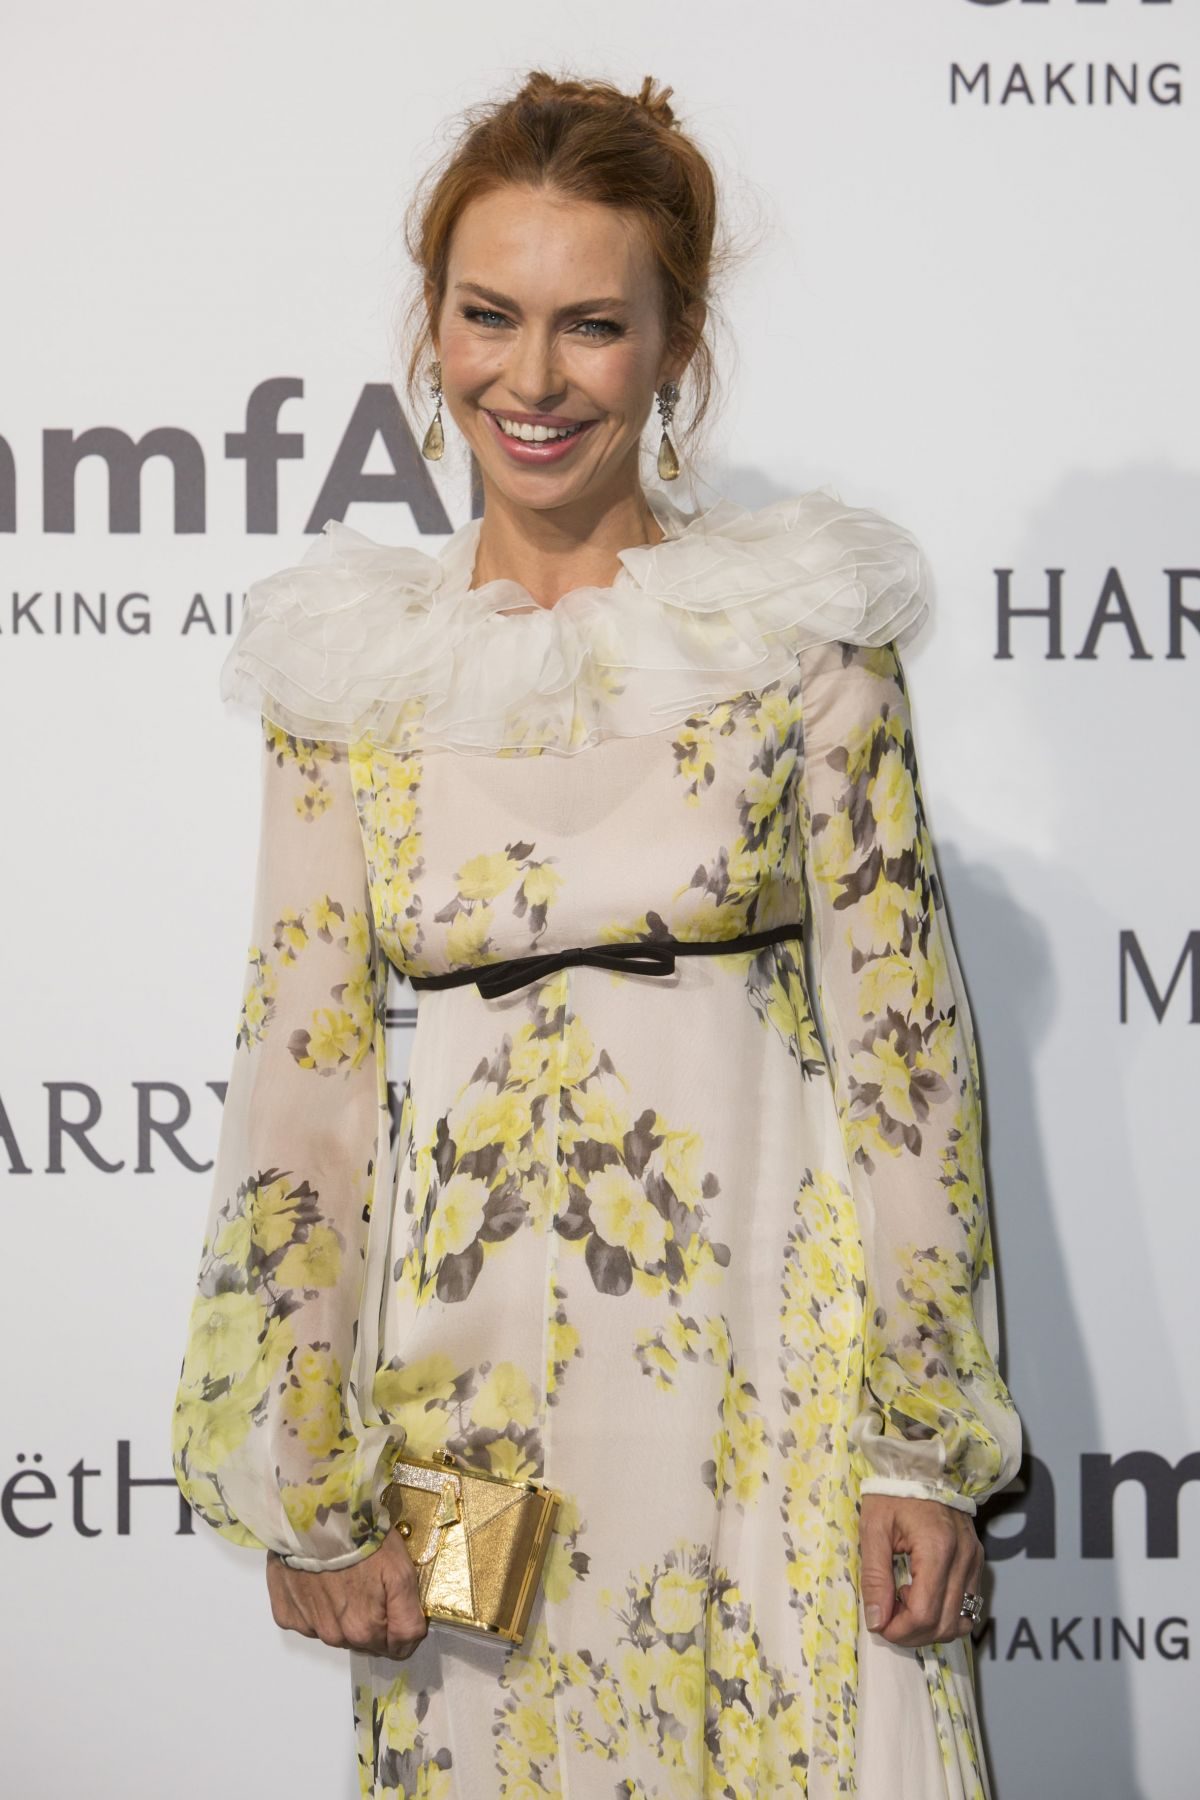 YVONNE SCIO at amfAR Gala in Milan 09/26/2015